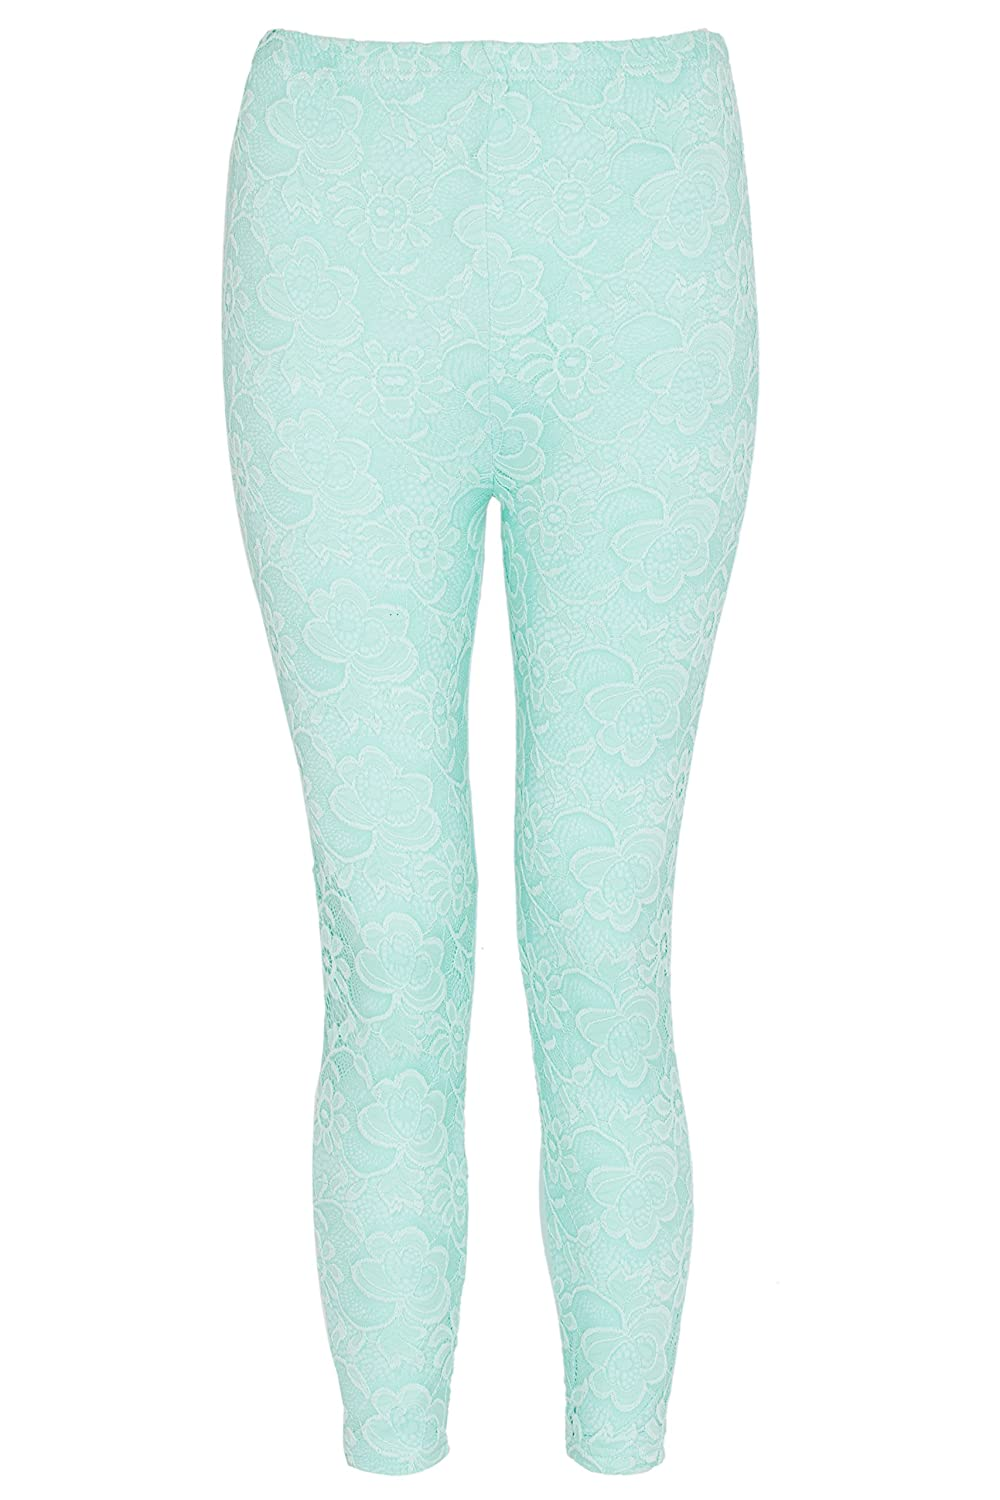 NOROZE Girls Front Mesh Lace Leggings Floral Tights